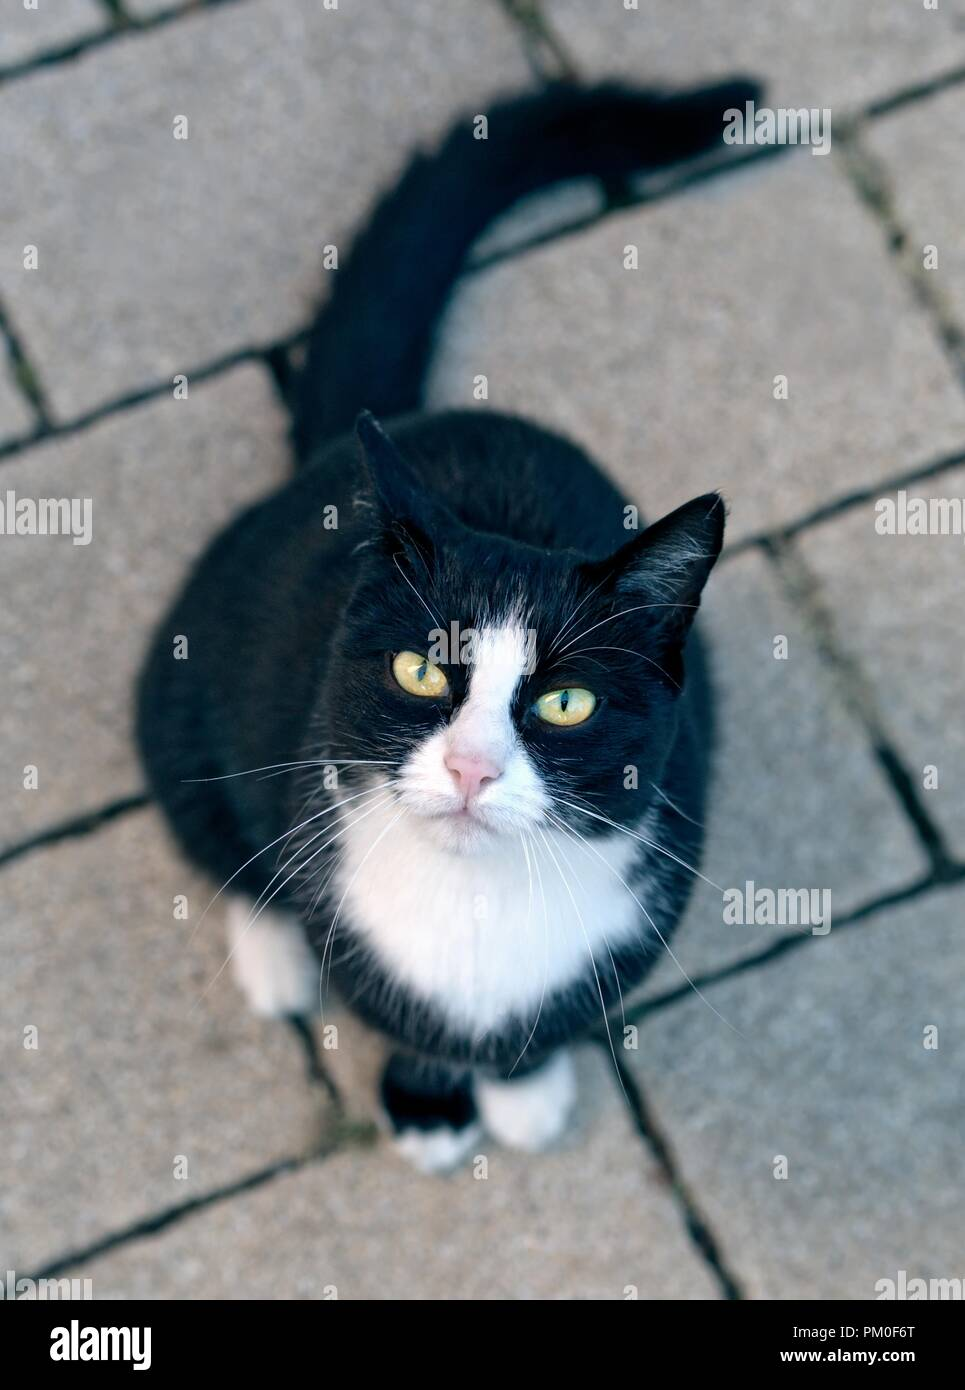 Stray tuxedo cat looking curious up to ther camera. - Stock Image